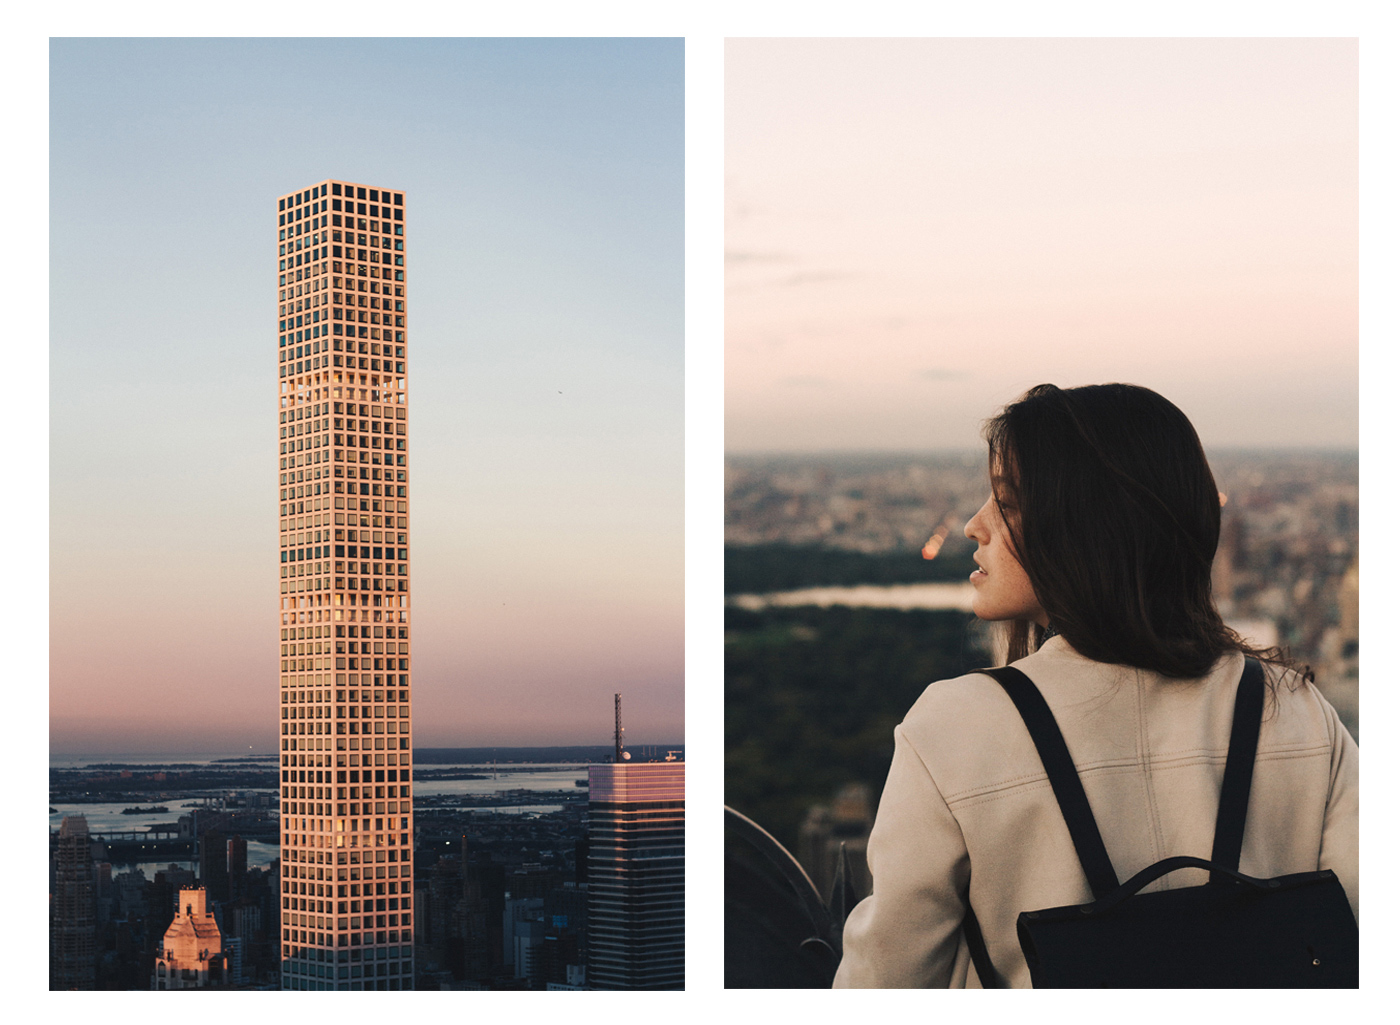 View from the top of the rock in New York city during golden hour with a girl admiring this insane view